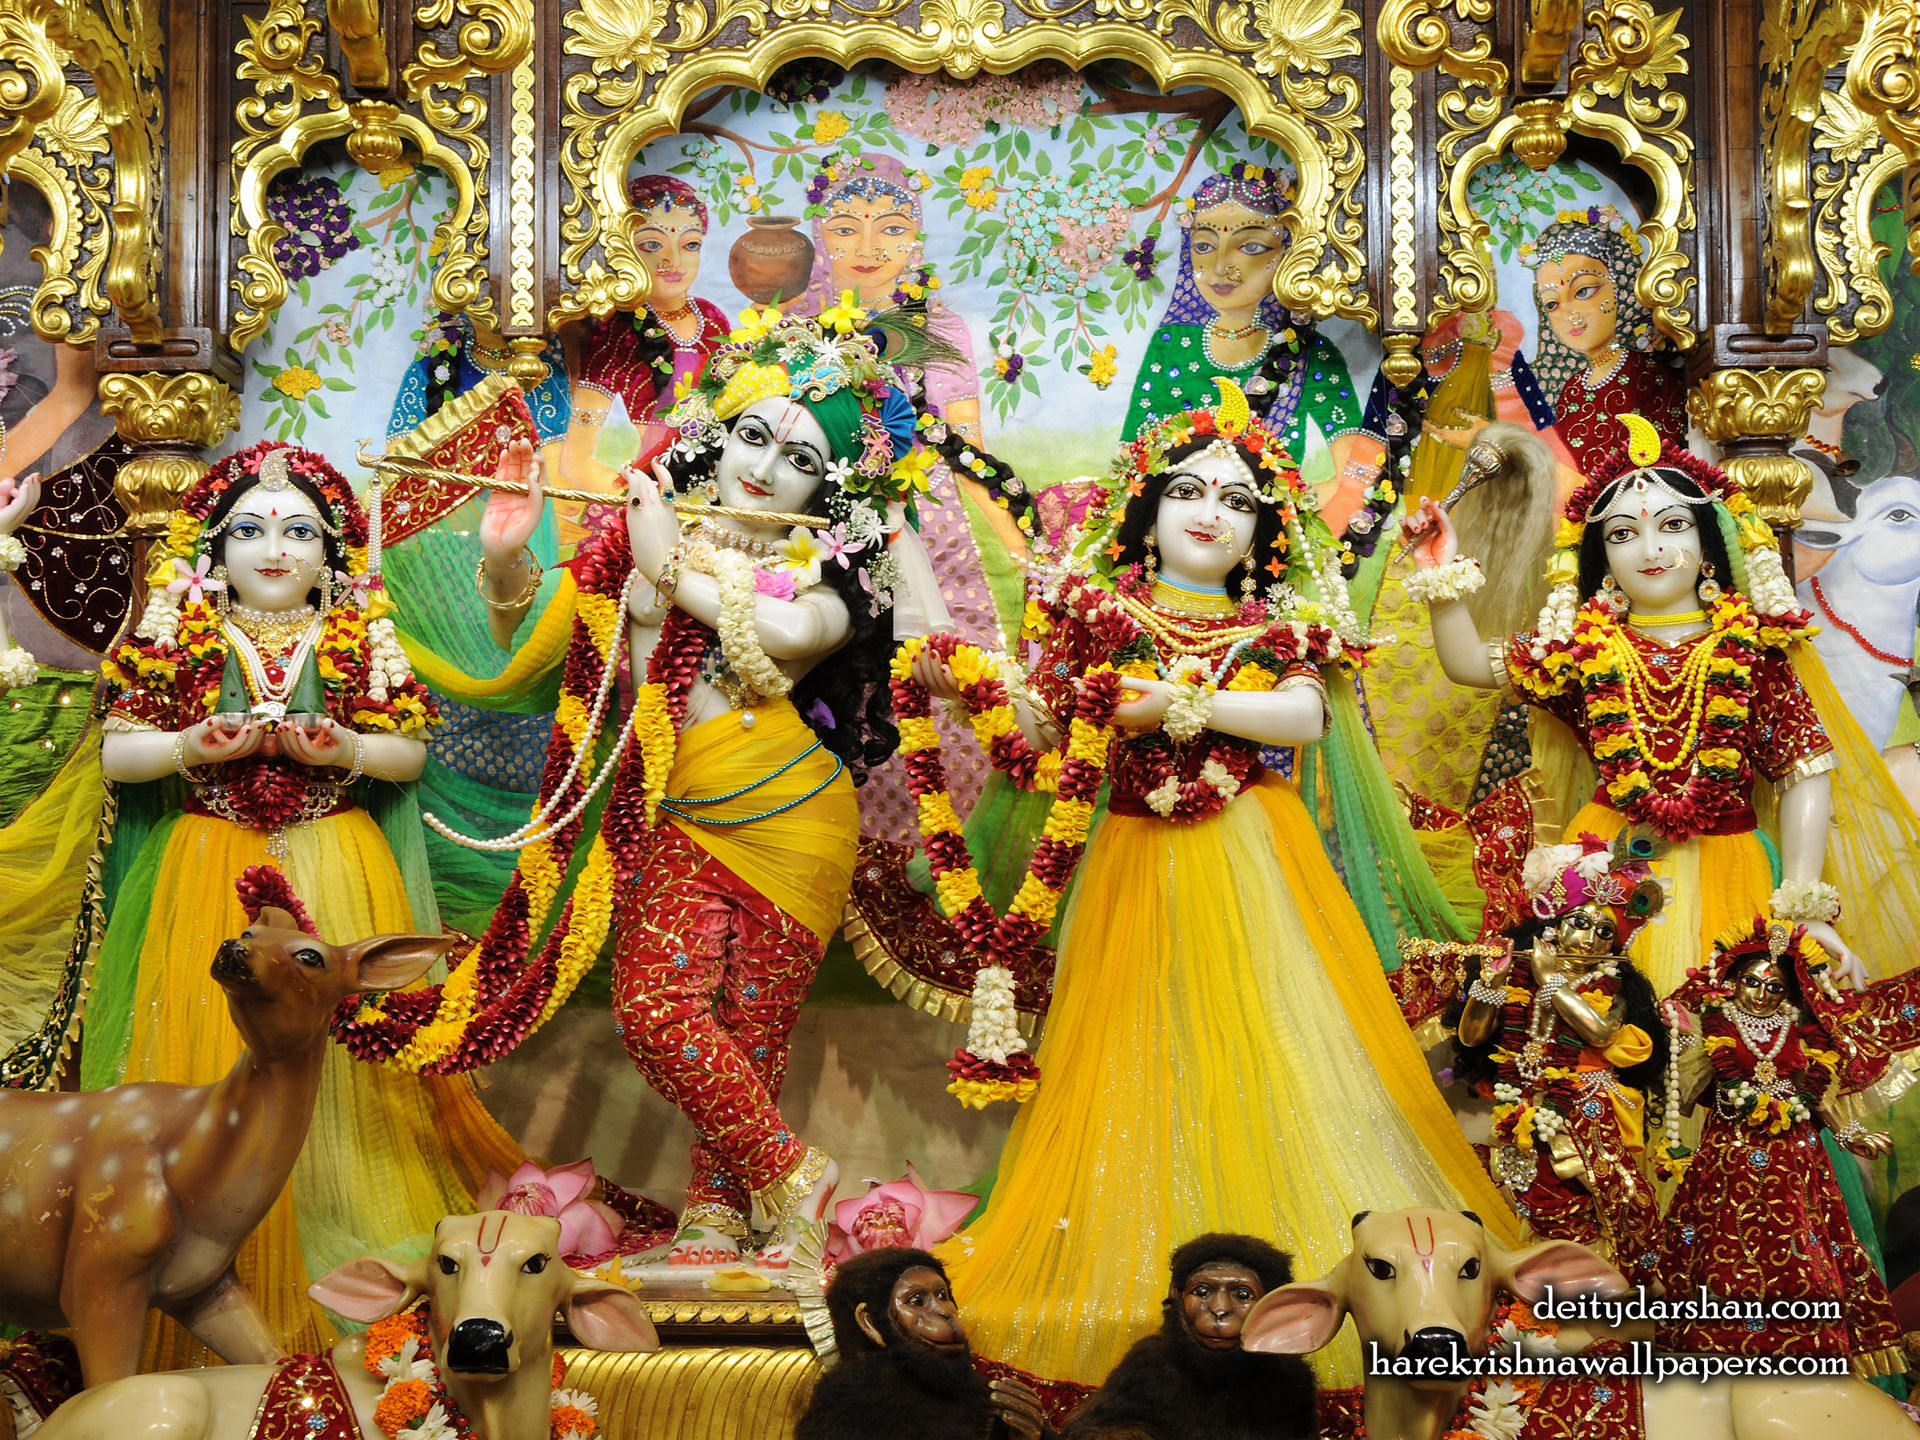 Sri Sri Radha Gopinath Lalita Vishakha Wallpaper (059) Size 1920x1440 Download